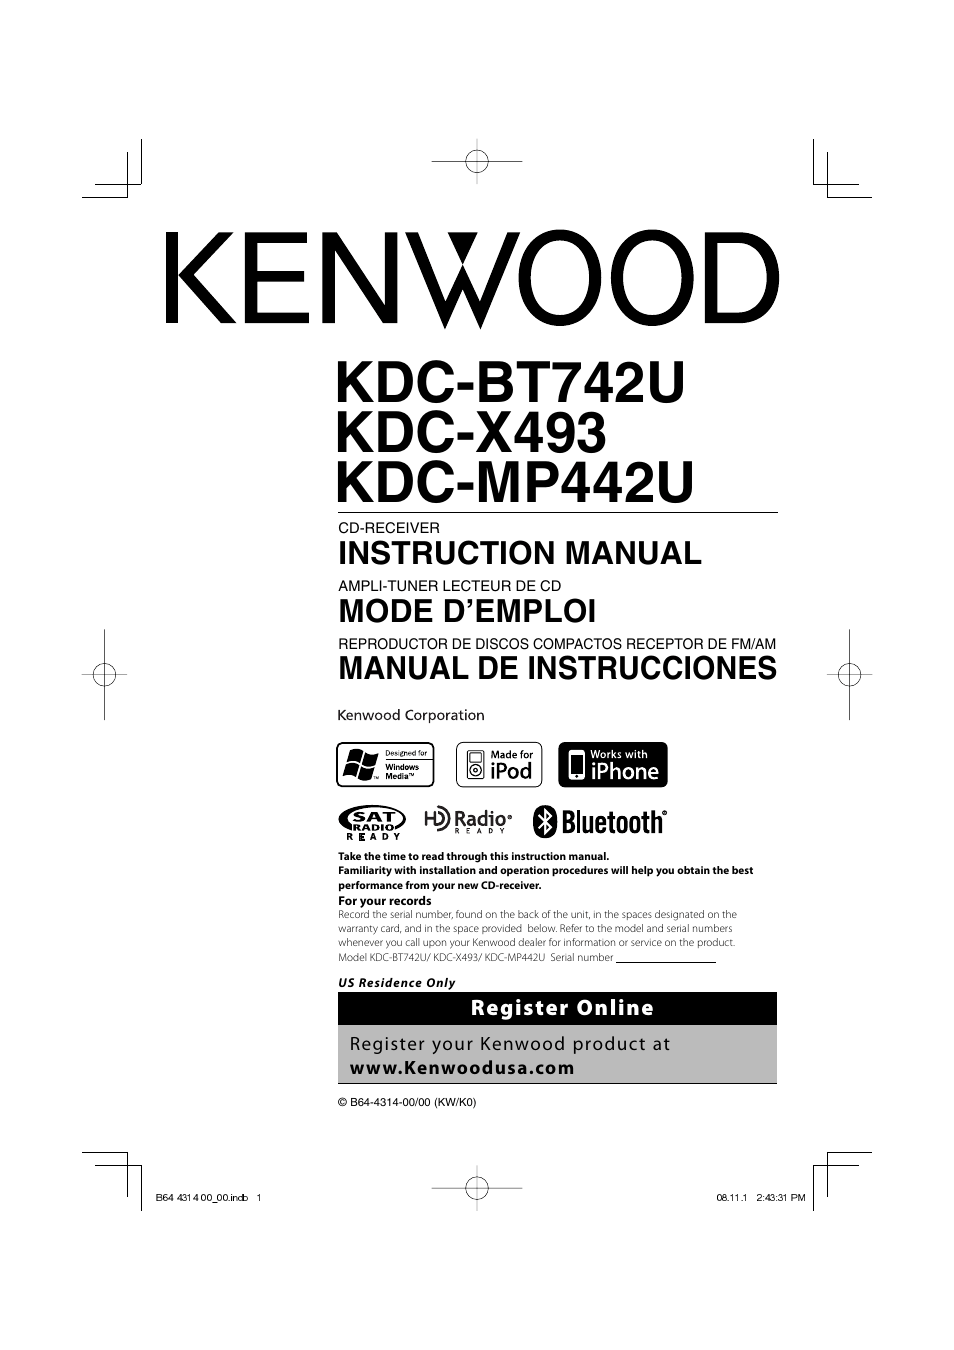 Kenwood Kdc Mp2032 Wiring Harness 33 Diagram Images Car Stereo File Detail X492 Diagrams Collection Bt742u Page1resize6652c940